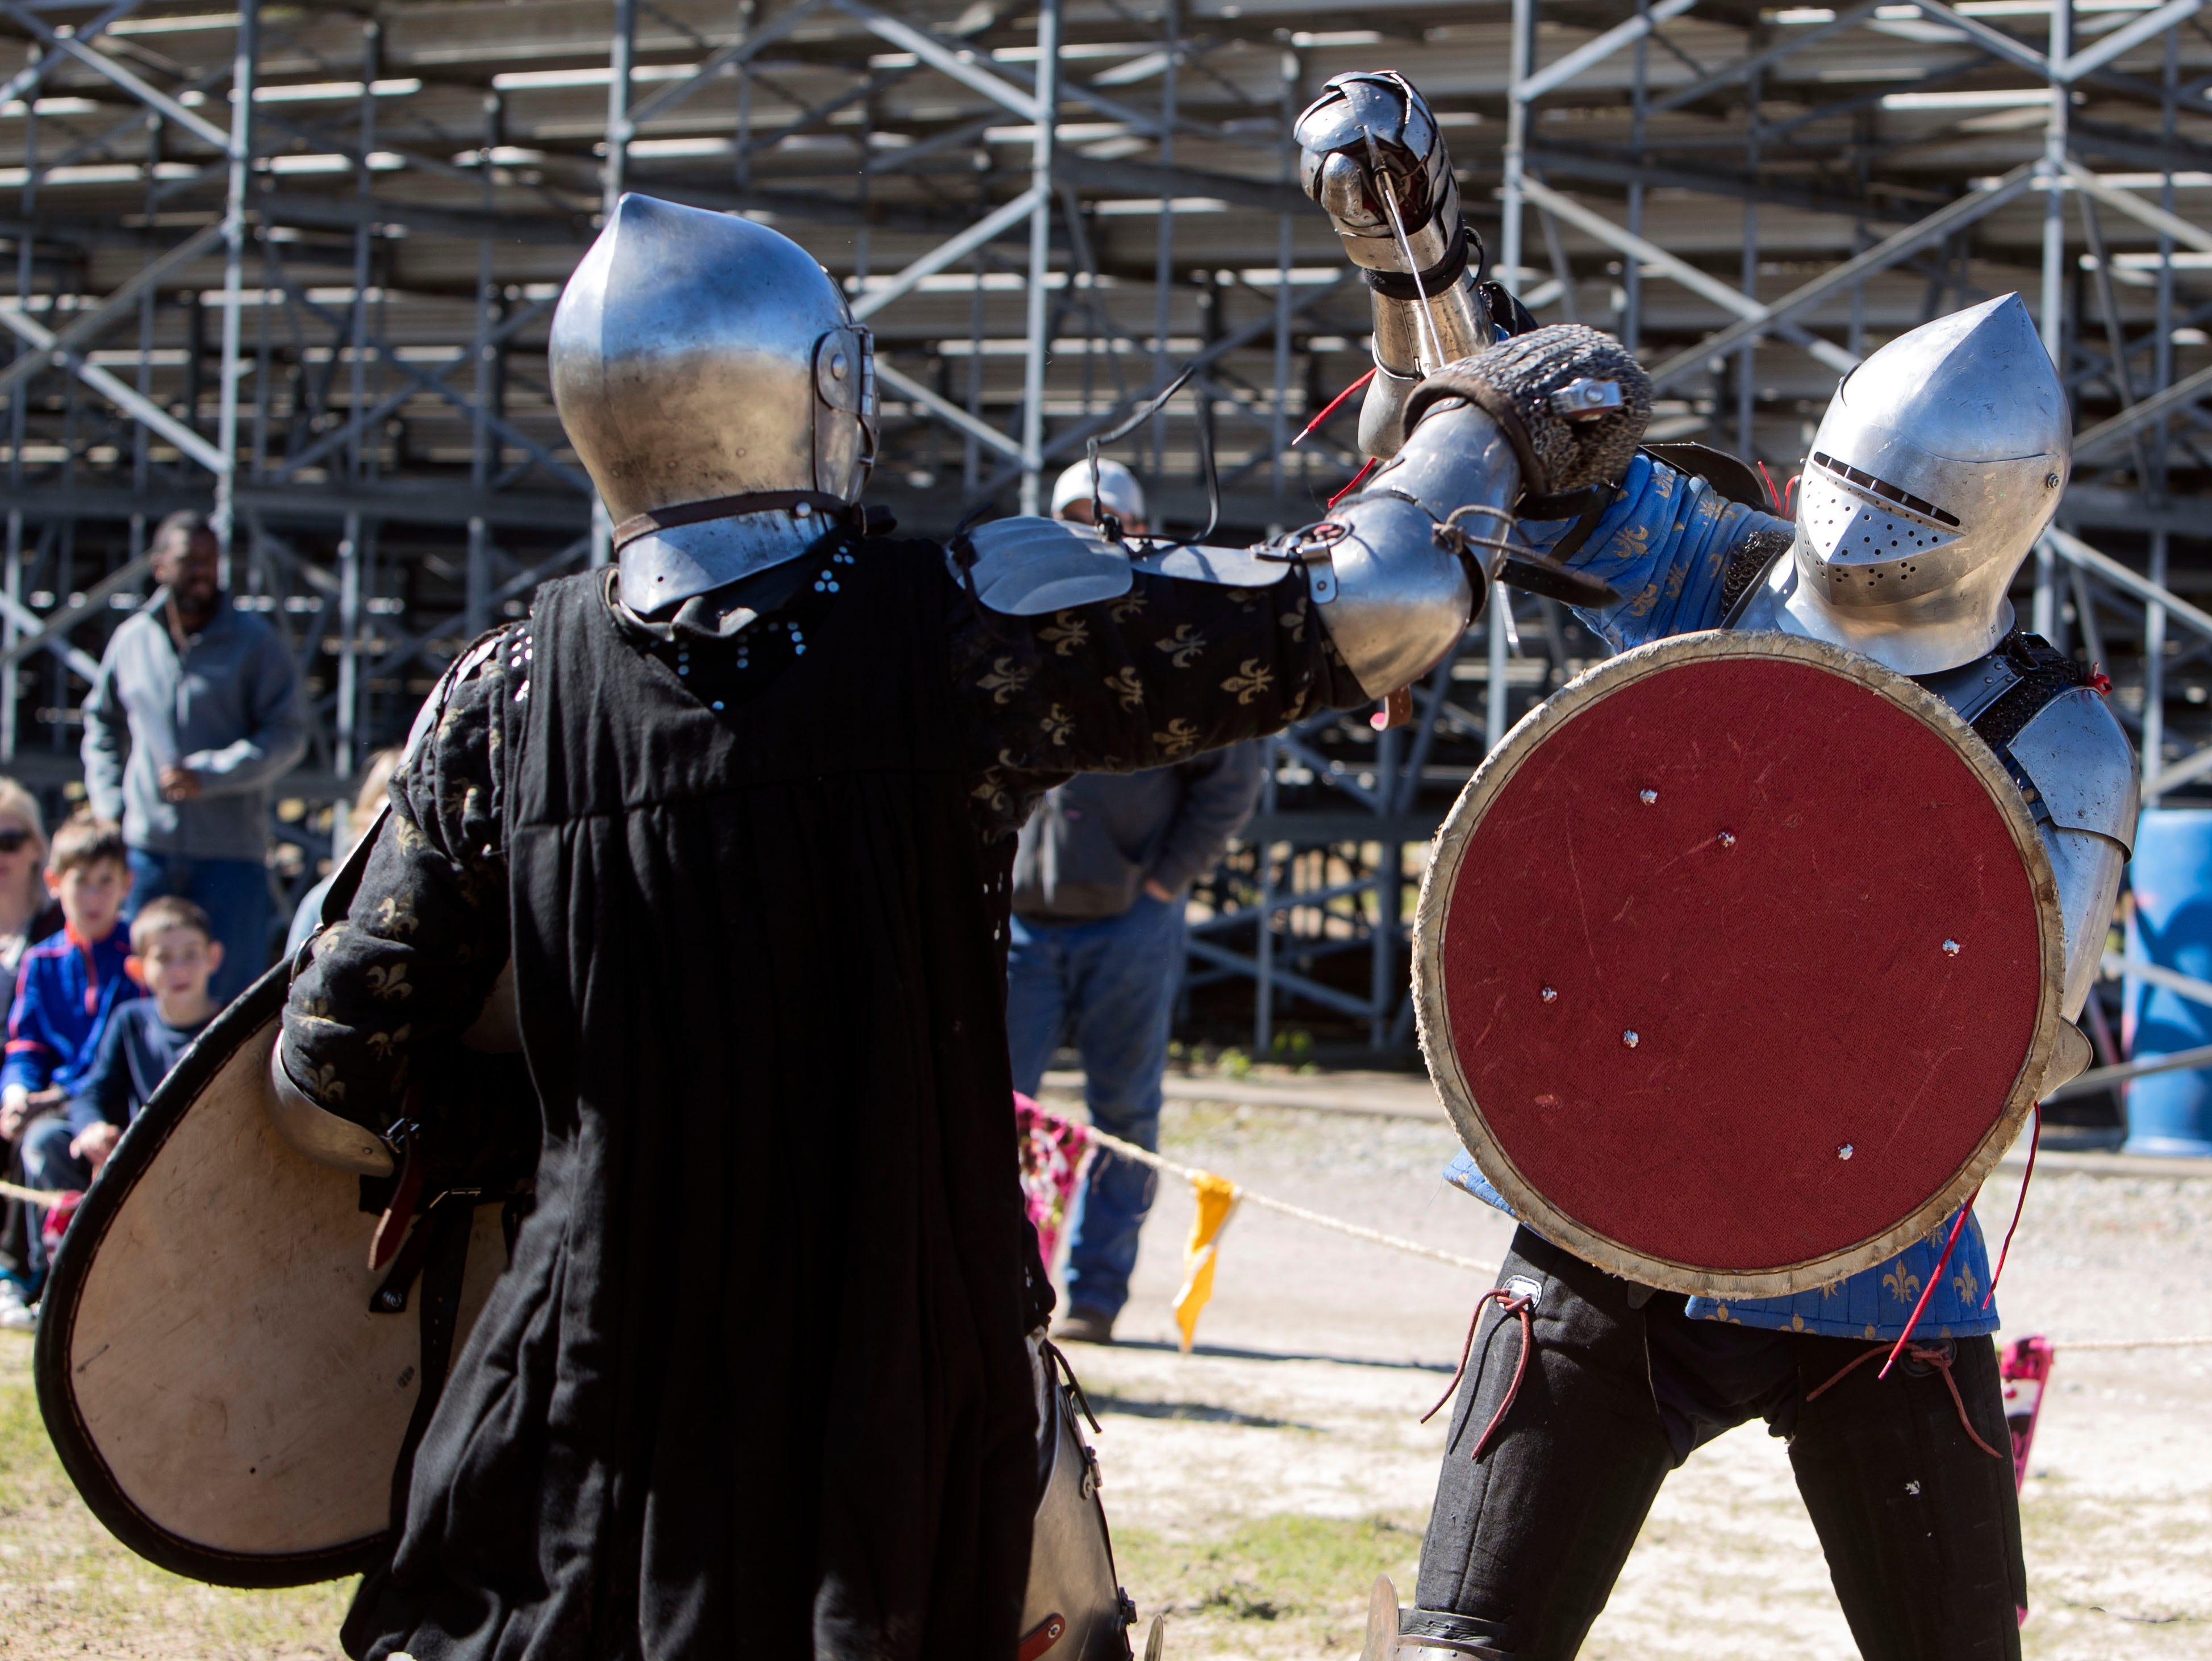 Powell Crider and Nick Home demonstrate a Amigard Combat League fighting Demonstration at the Mid South Renaissance Faire featured Sunday October 21,2018 in Millington, Tennessee.